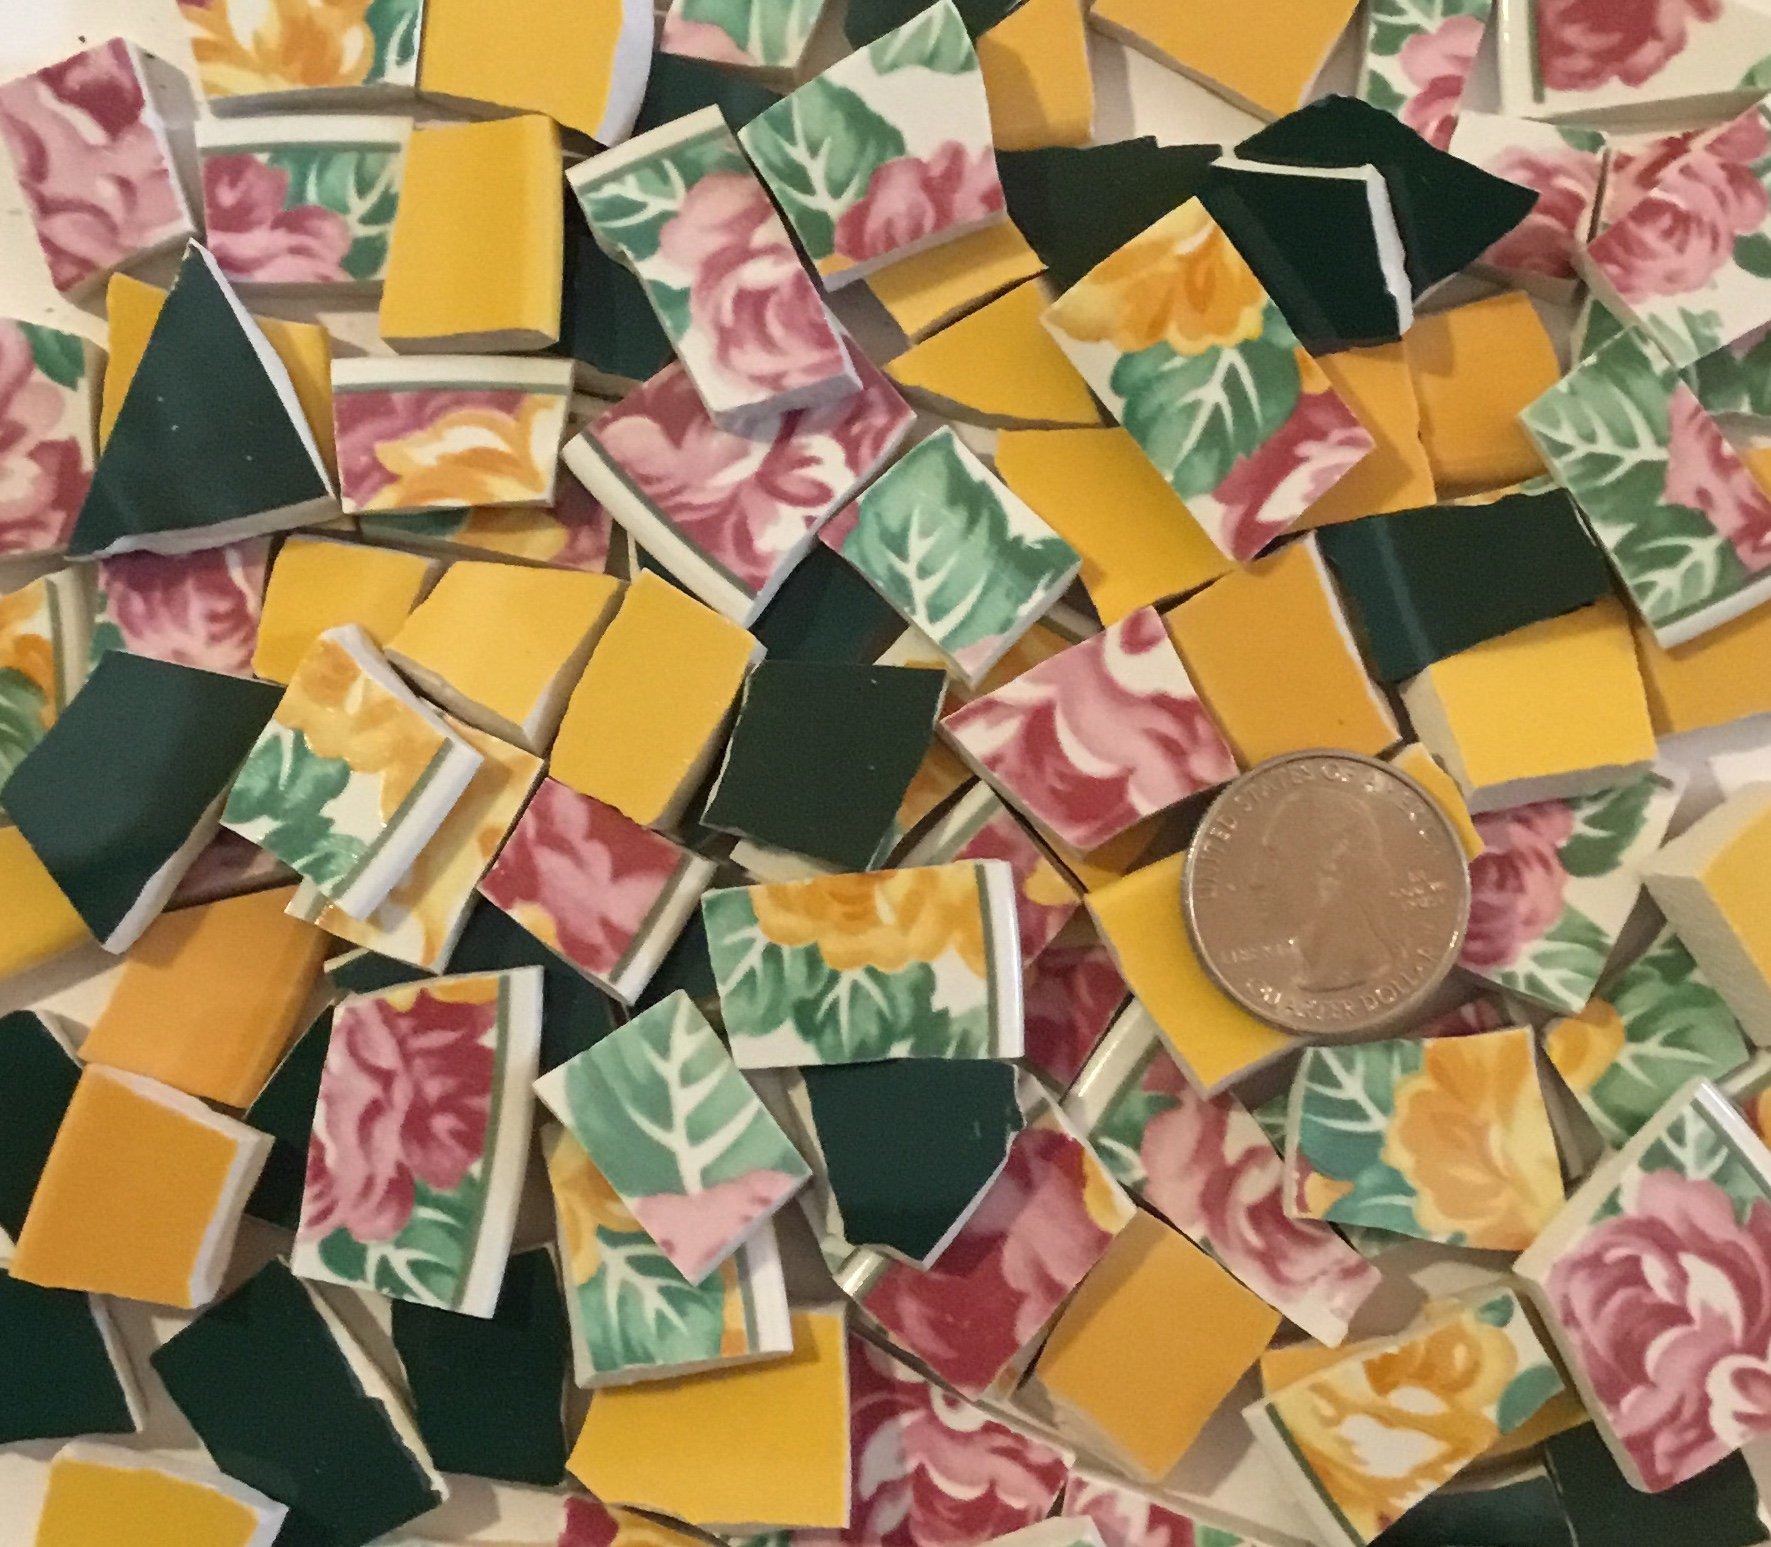 100+ Mosaic Tiles ~ China/Ceramic/Stoneware/Broken Dishes & Plate Pieces ~ Art Supply Tile Made for Mosaics & Craft ~ Pink & Yellow Roses with Color Coordinated Solid Yellow & Green (T#405)